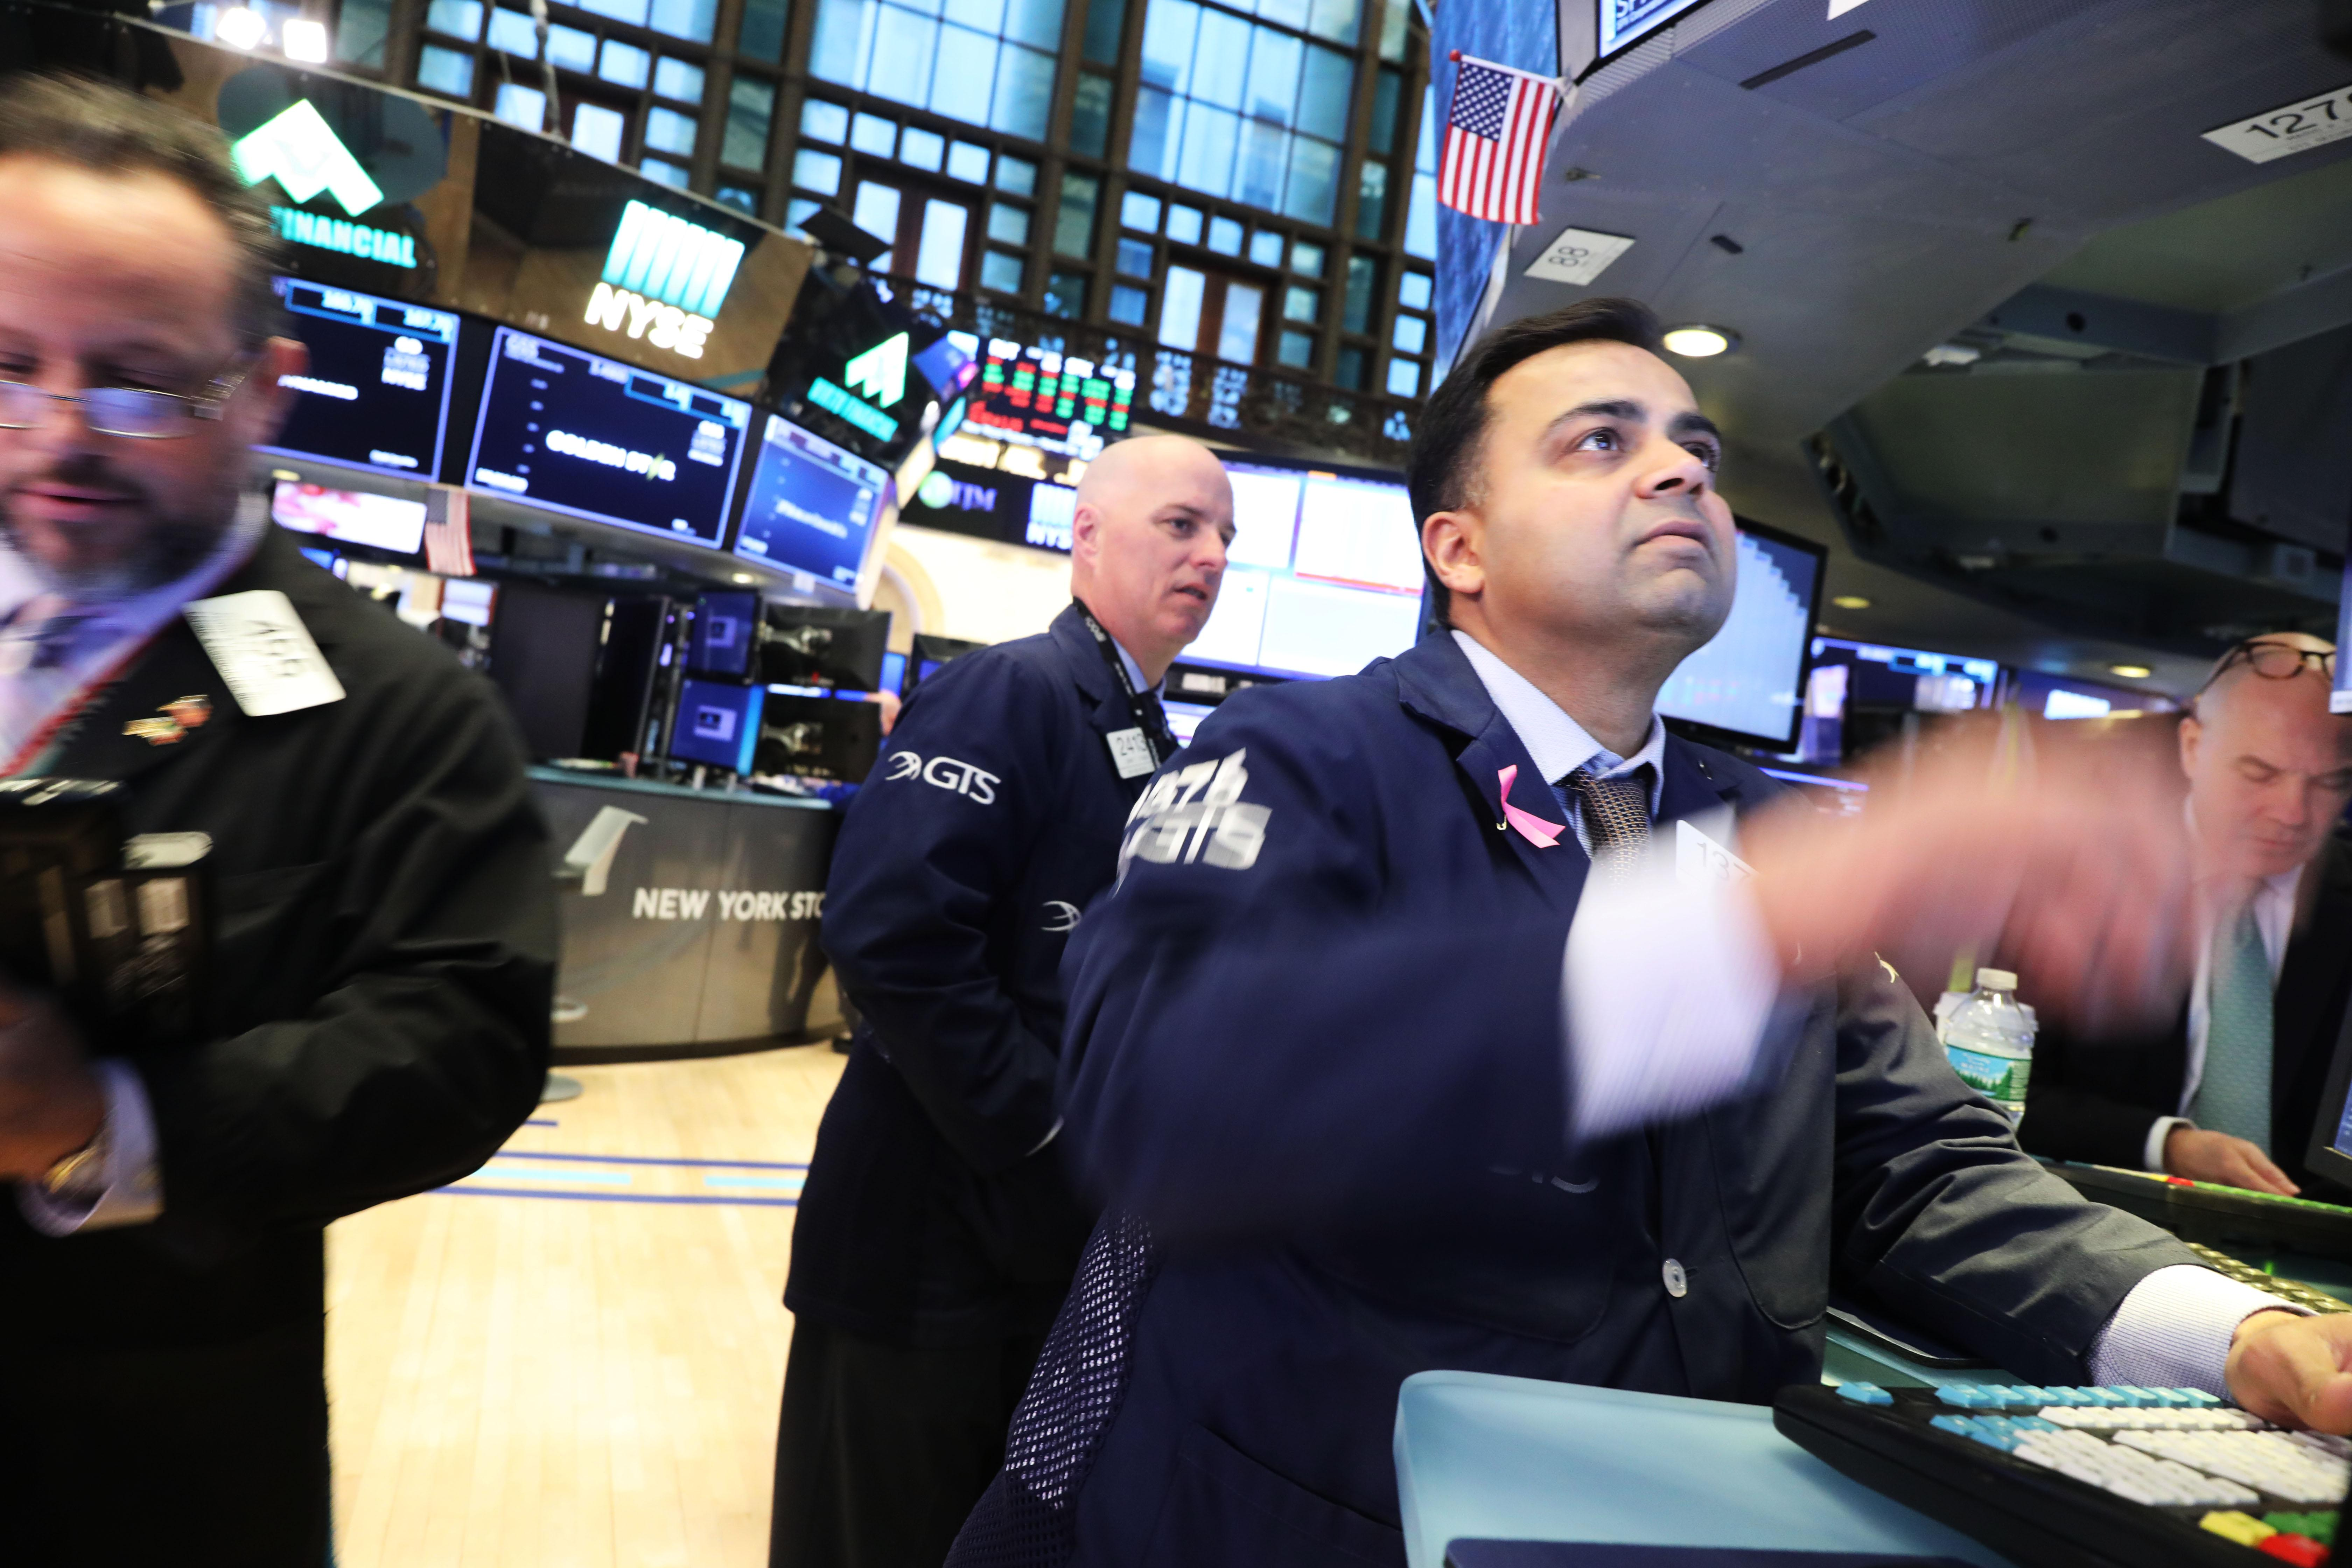 GettyImages-Stock market March 15